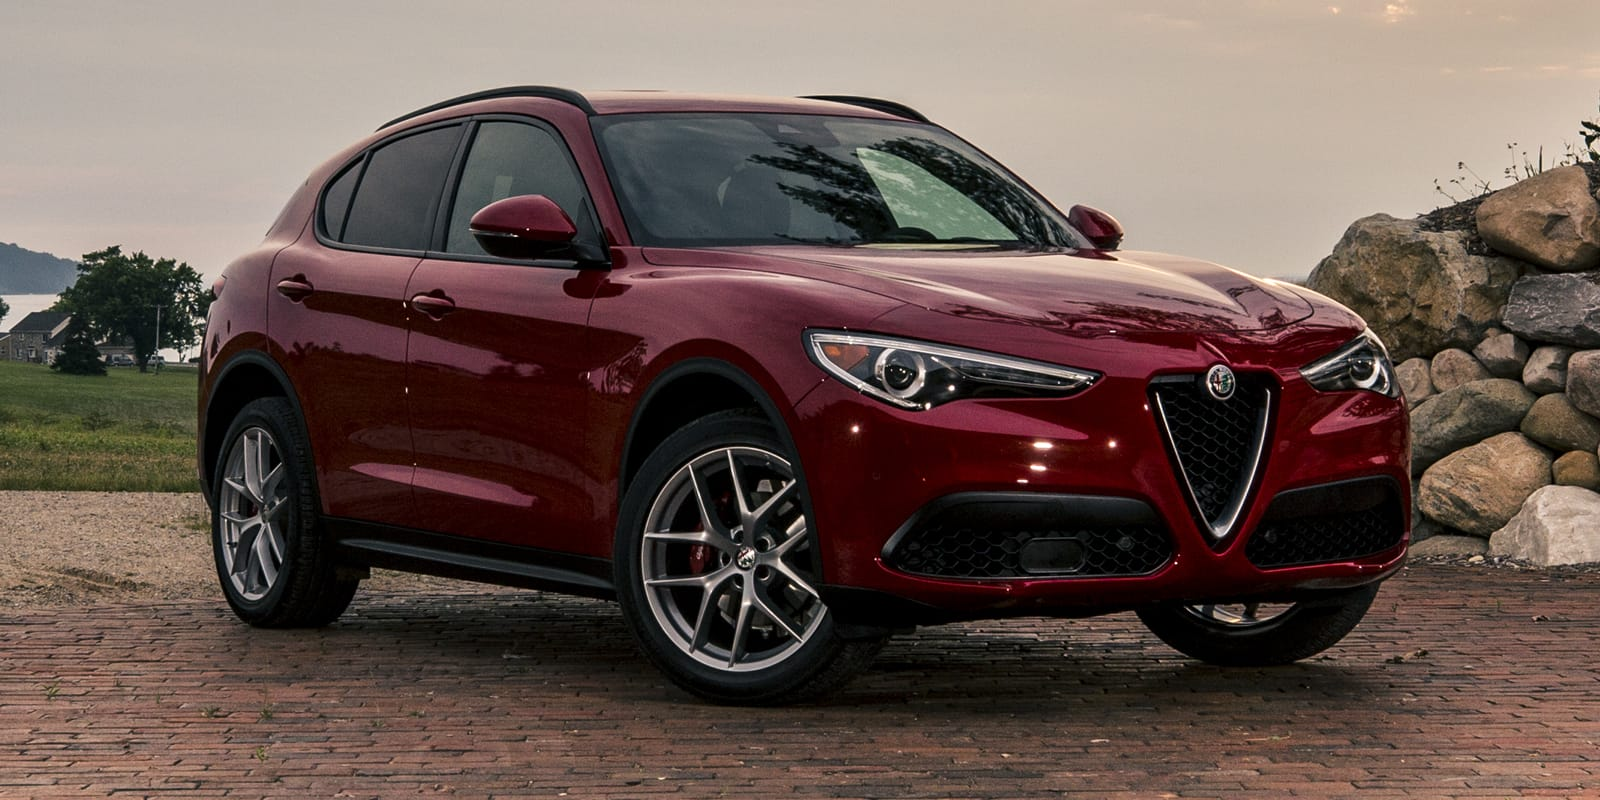 Stelvio Ti, The New Alfa Romeo Italian SUV